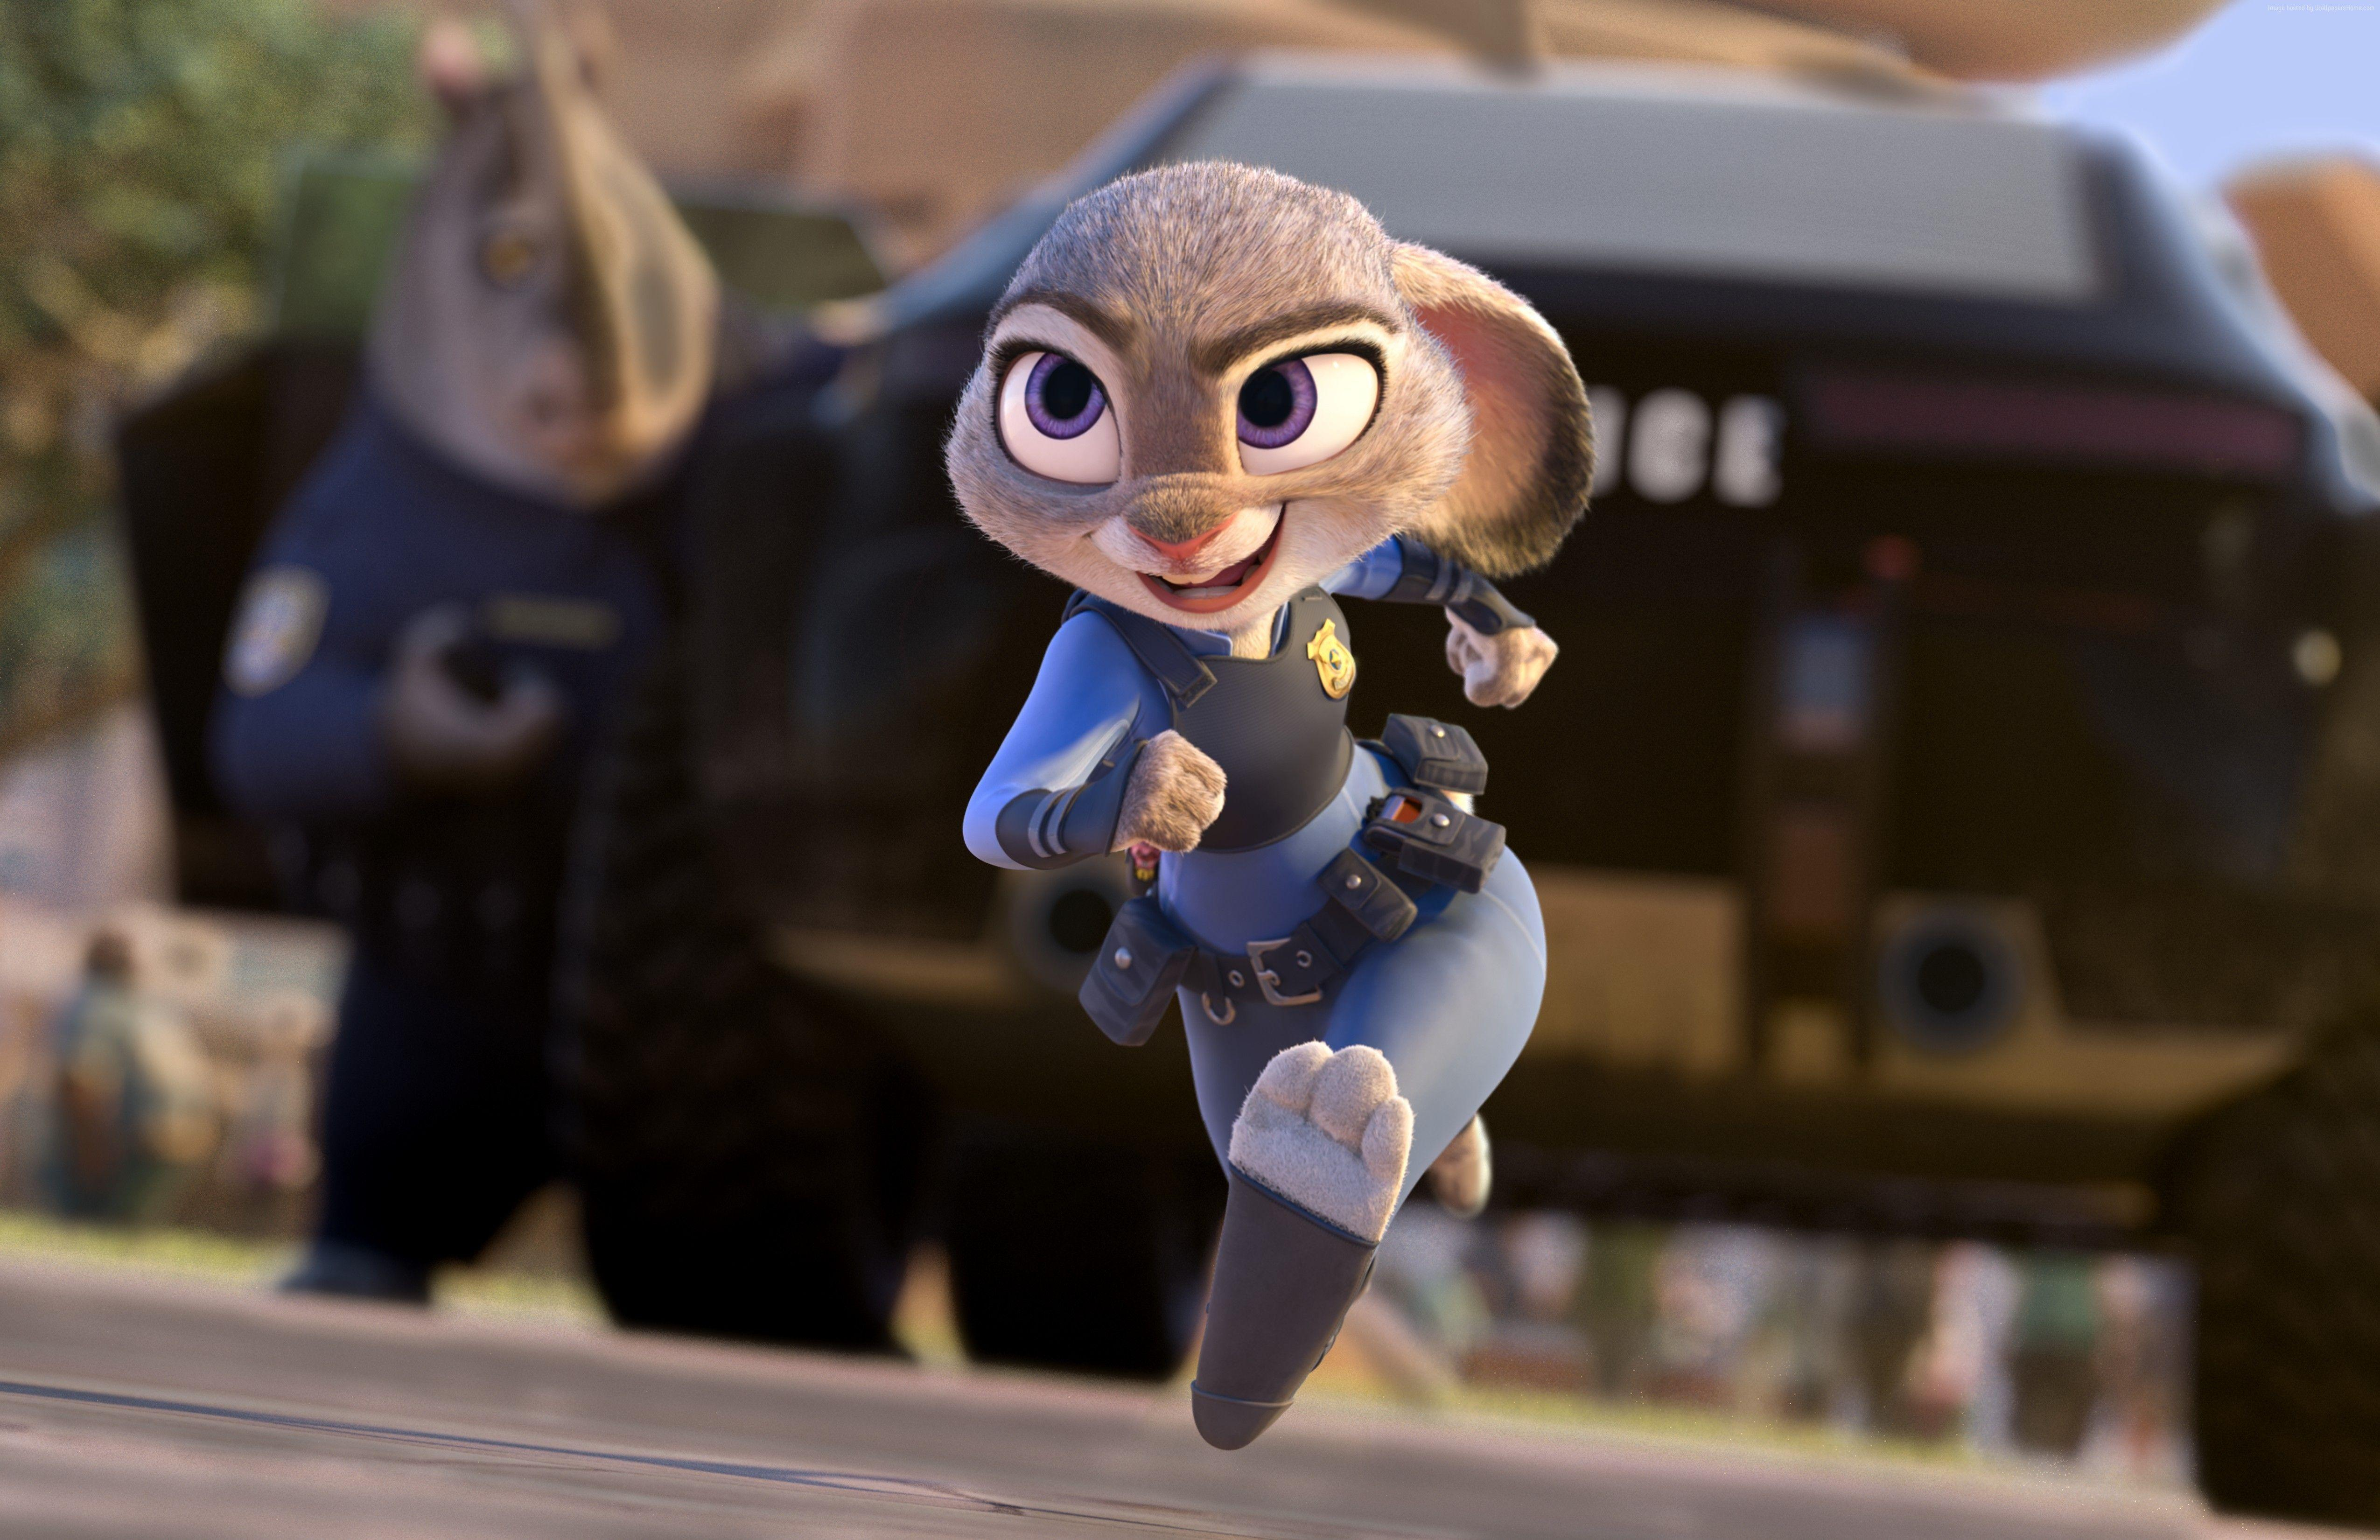 Zootopia Wallpaper, Movies: Zootopia, judy hopps, rabbit, Best ...